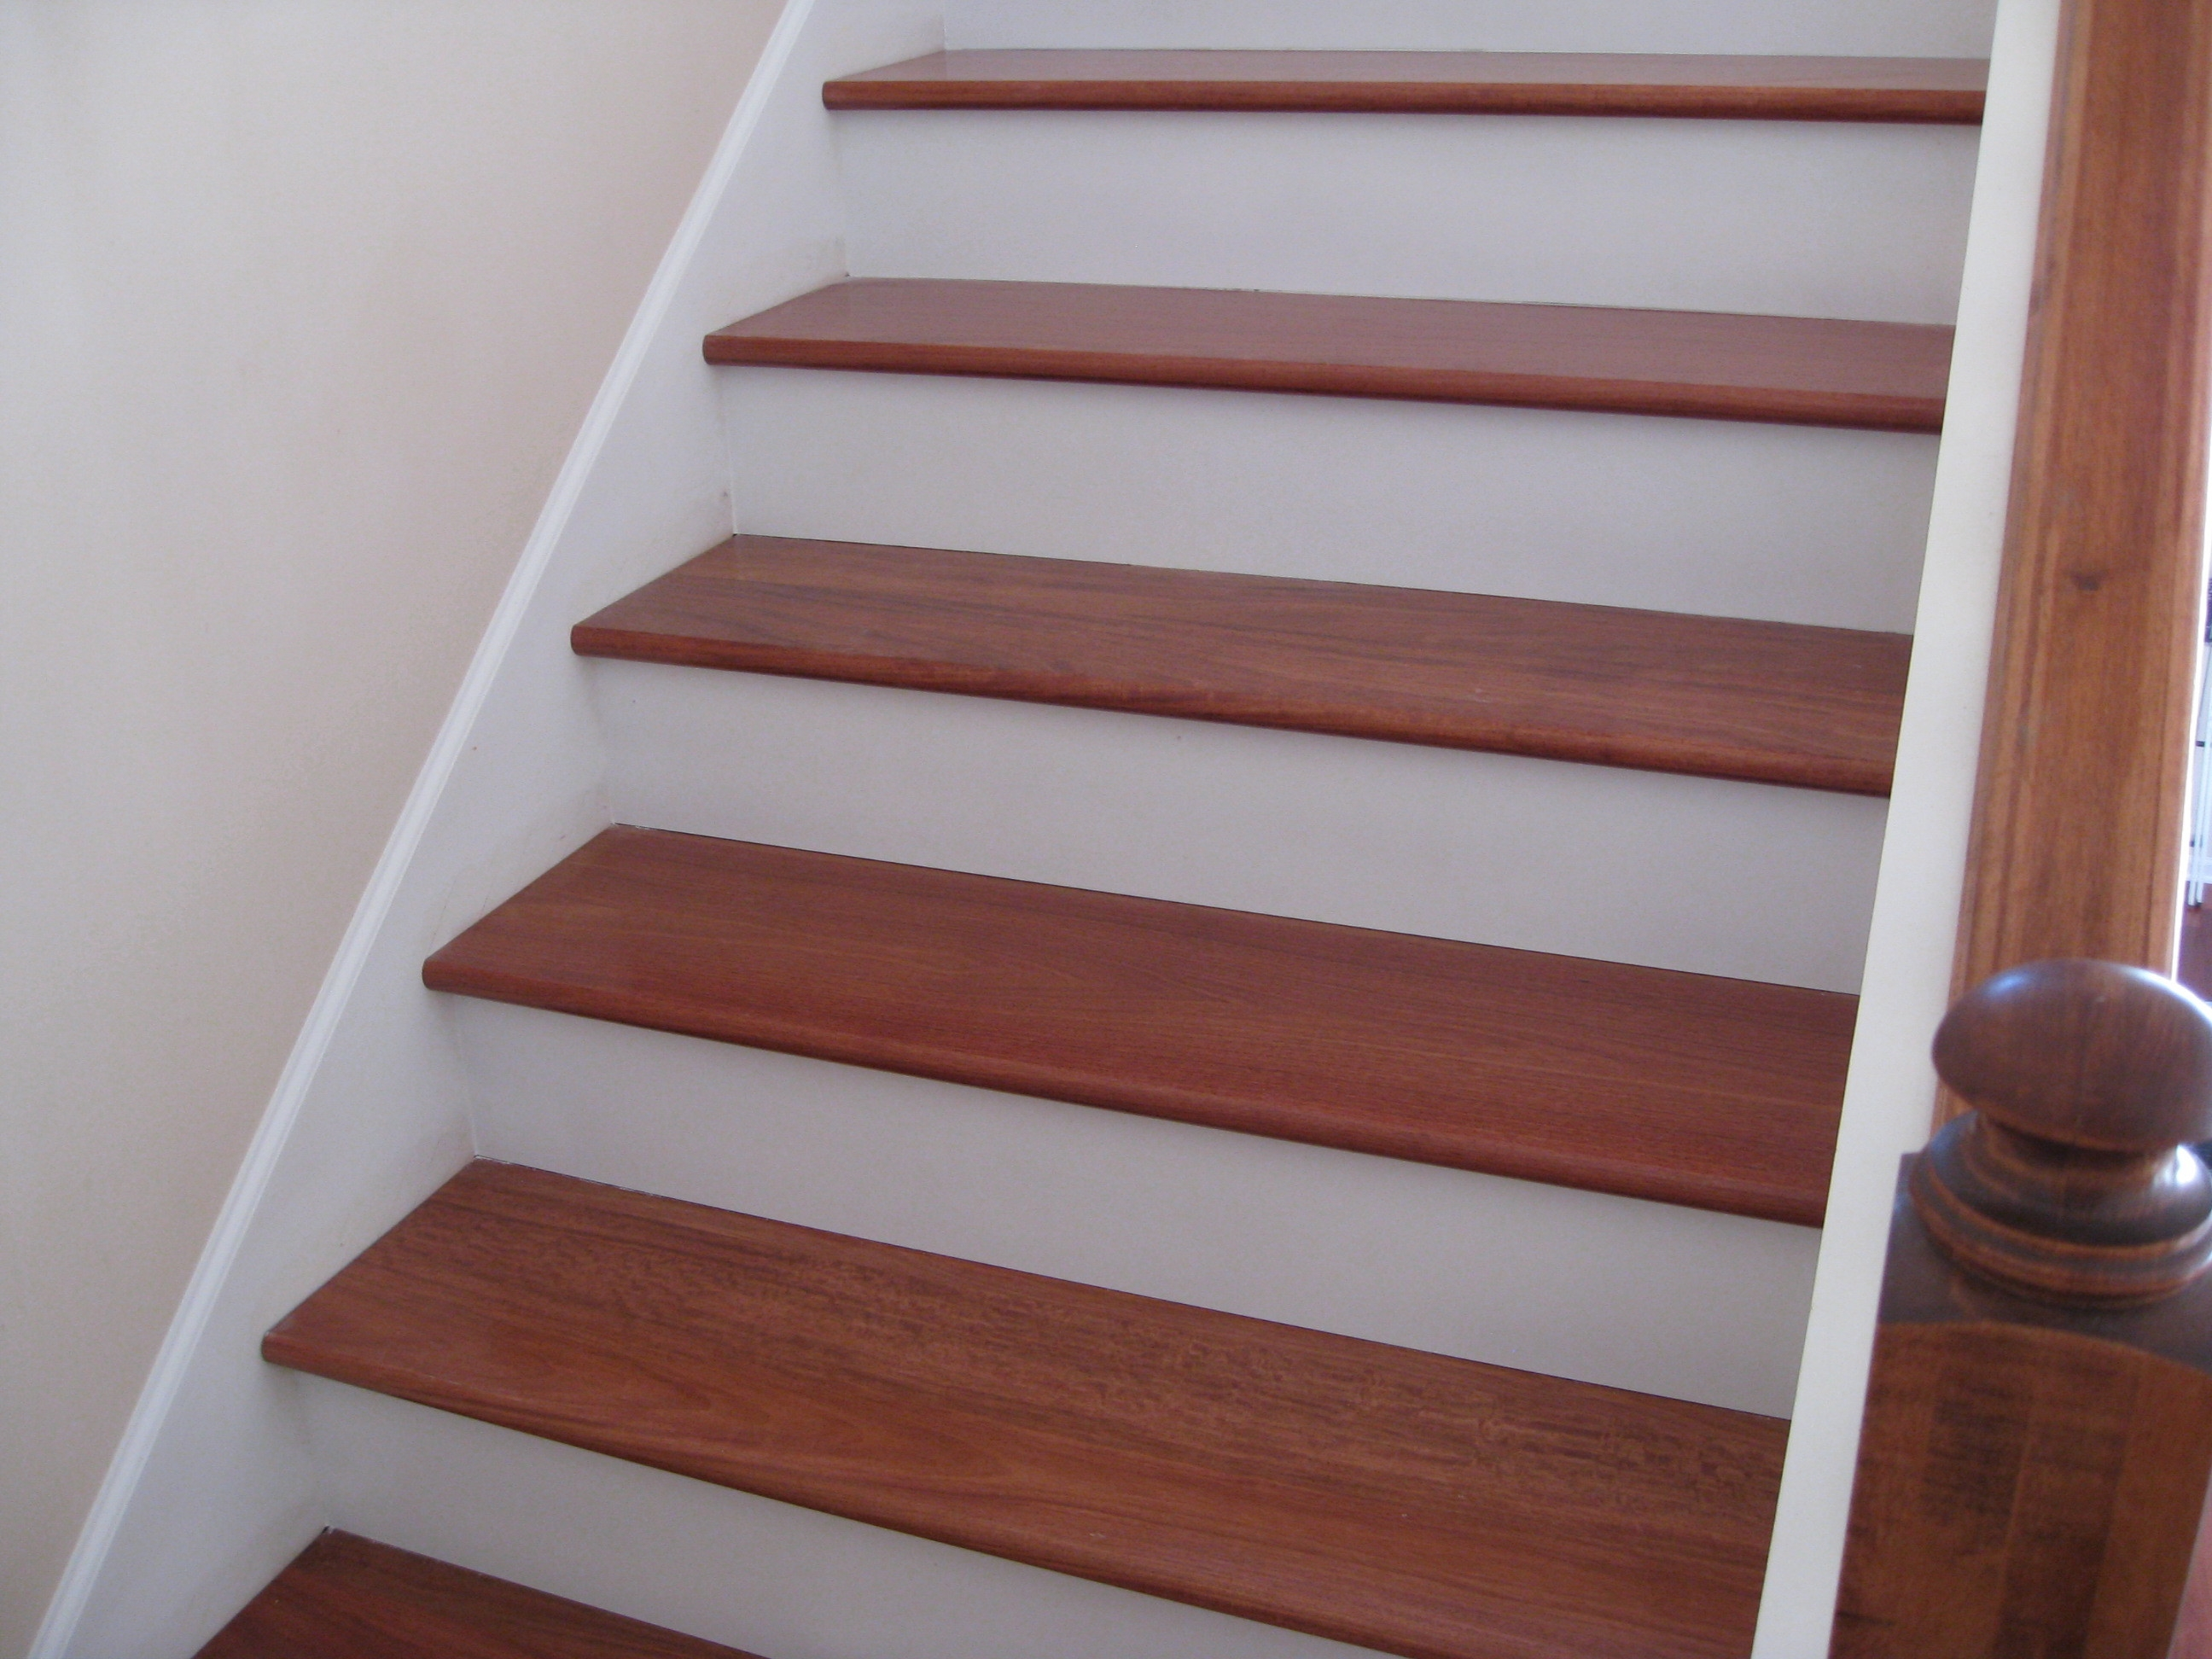 Upgrade Stair Treads And Risers With Hardwood Unique | Wood Look Stair Treads